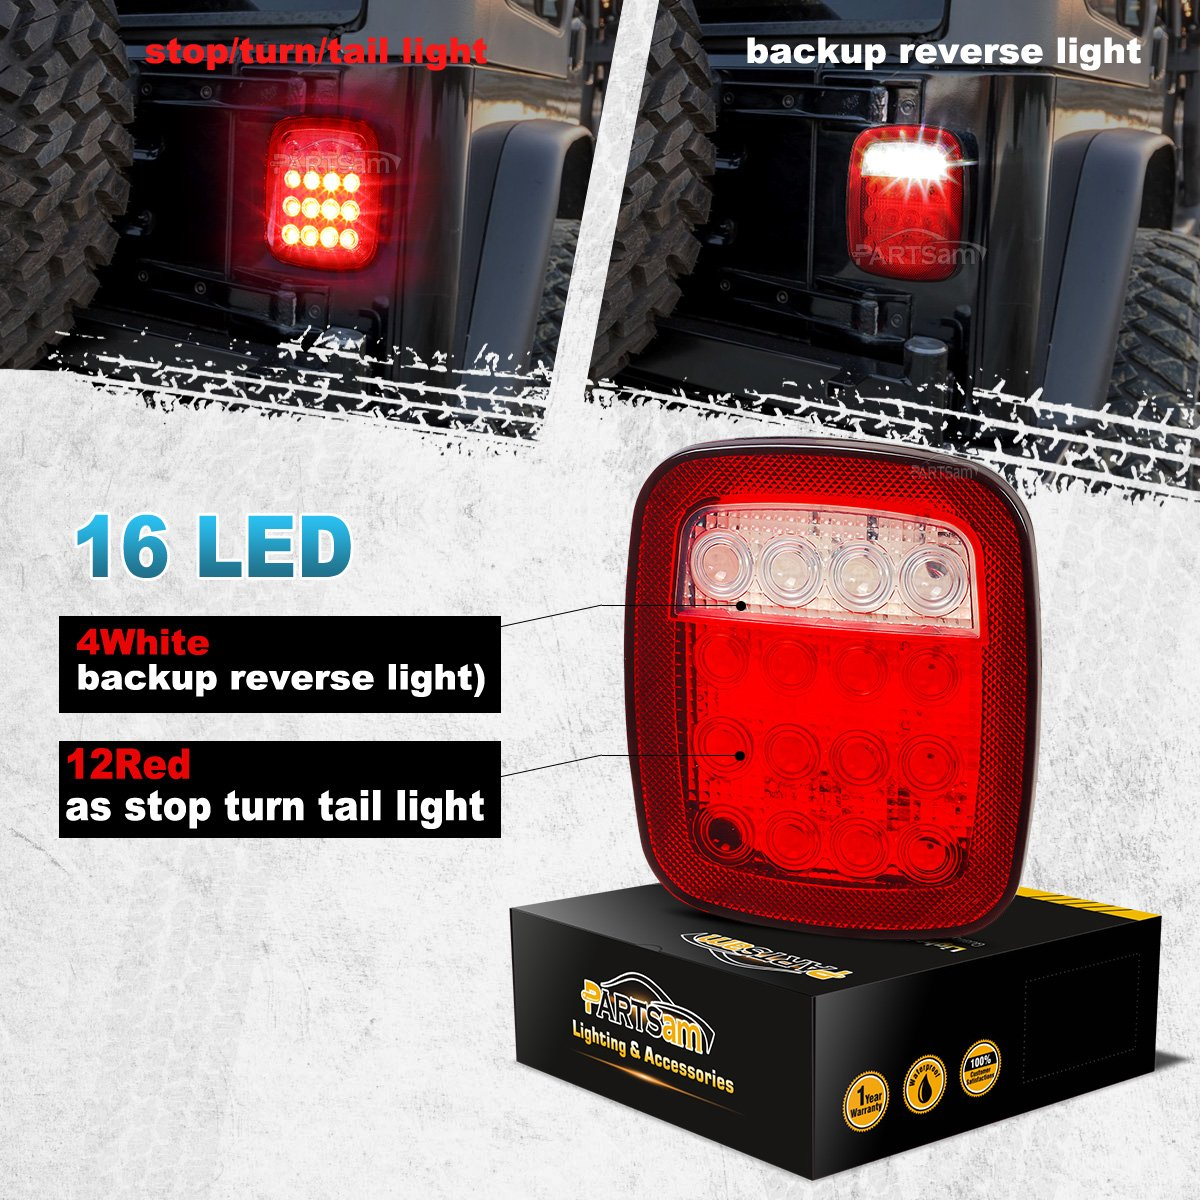 Partsam 2x Universal 16 Led Stop Tail Turn Signal Backup 89 Yj Light Wiring Diagram Reverse Brake Clearance Marker Lights Lamps Red White For Truck Trailer Jeep Jk Cj